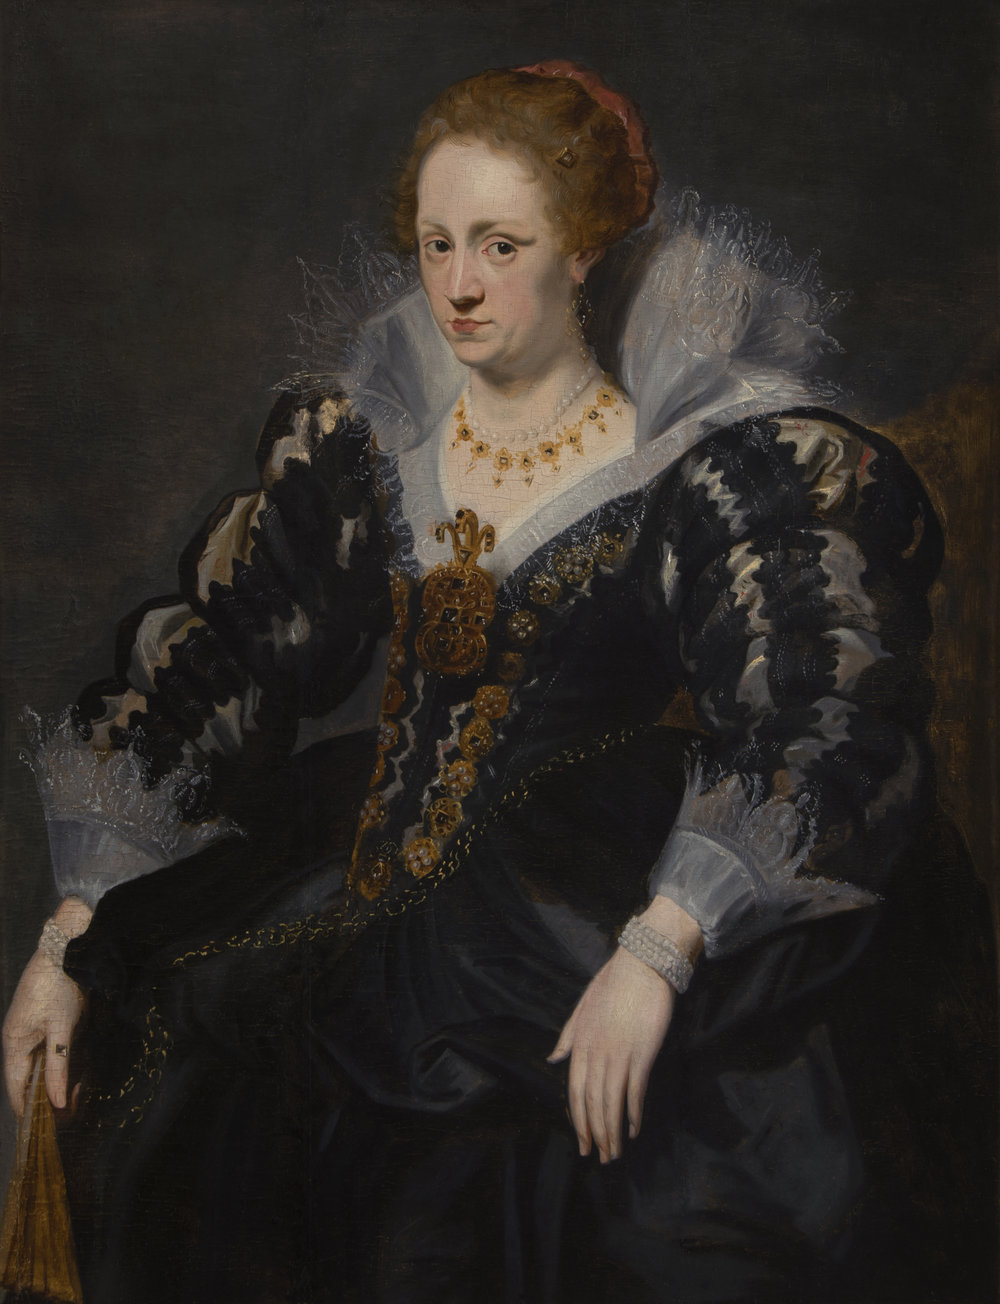 SIR ANTHONY VAN DYCK, ATT. TO   PORTRAIT OF JAQUELINE VAN CAESTRE, WIFE OF JEAN CHARLES DE CORDES